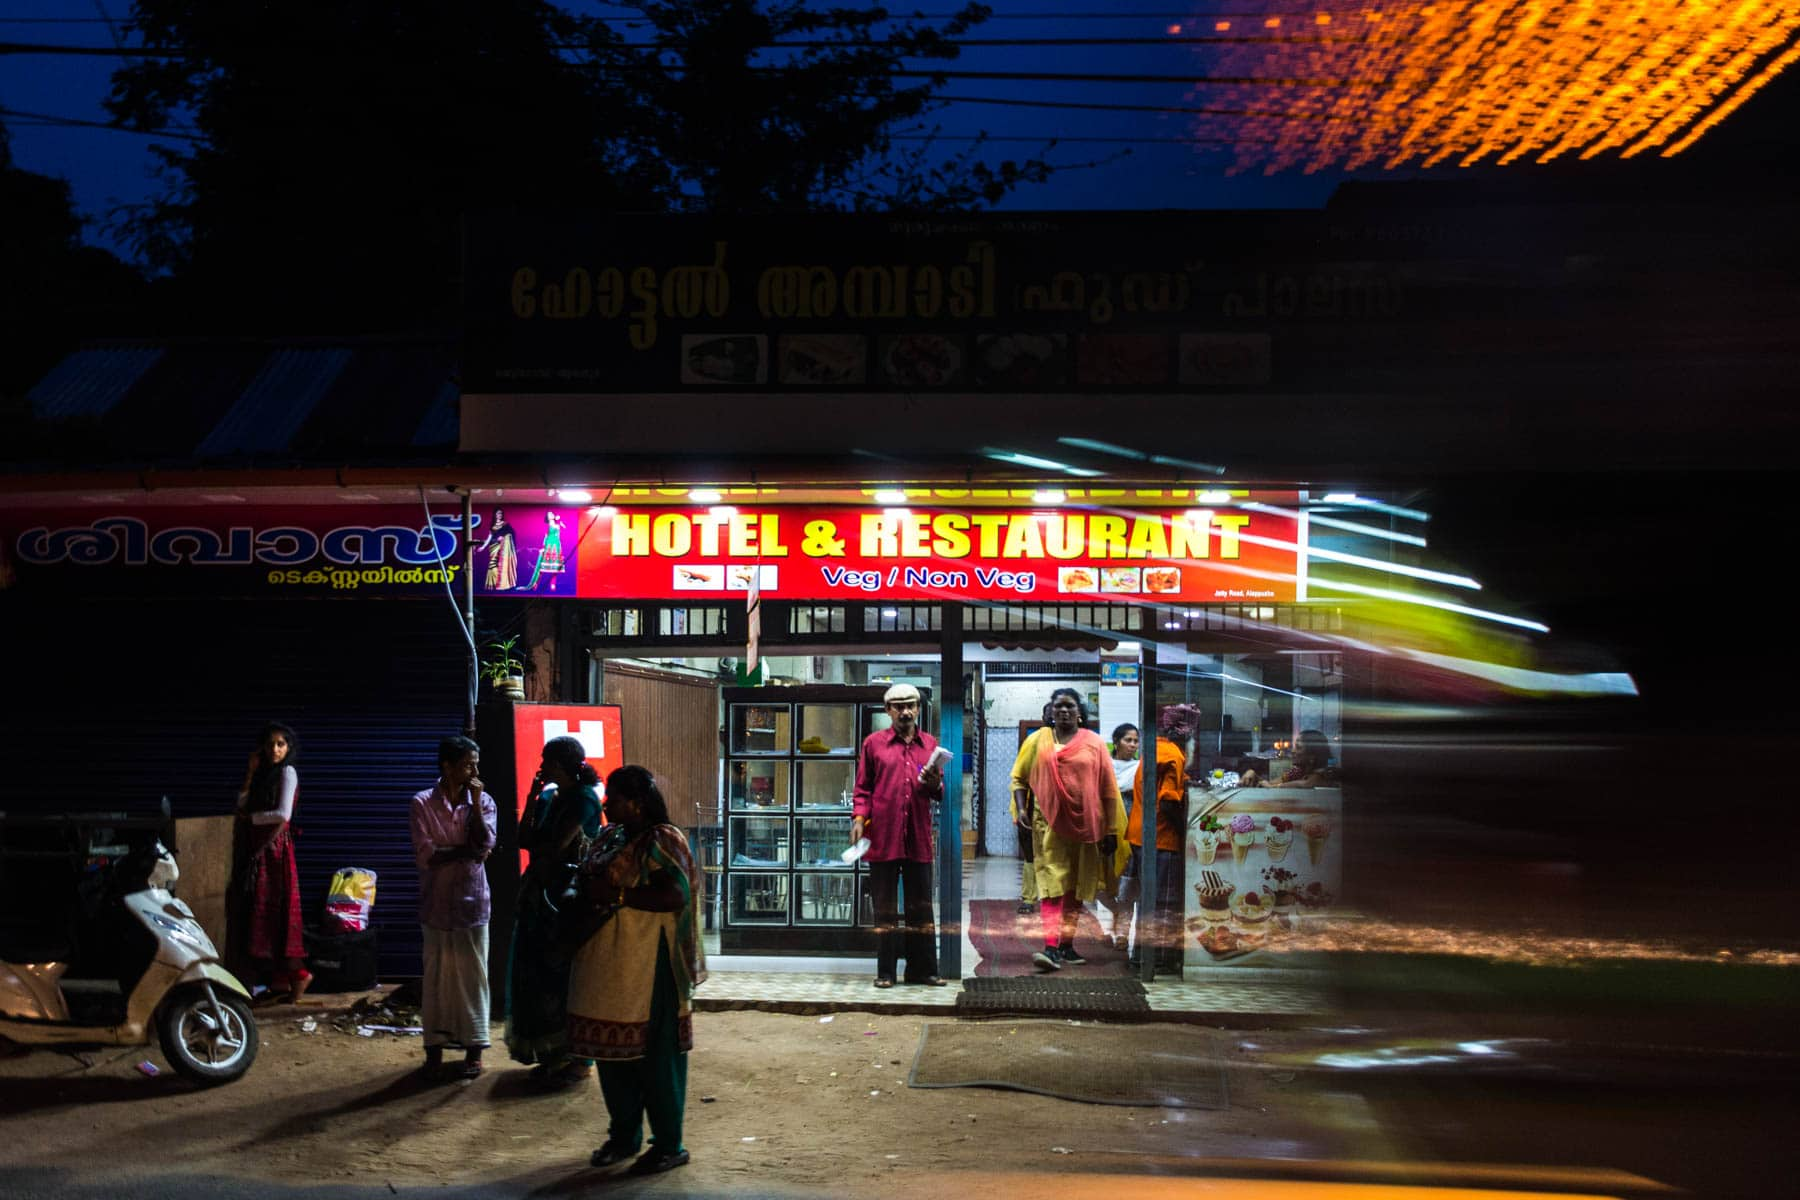 A hotel that is not a hotel in Alleppey, India - Lost With Purpose